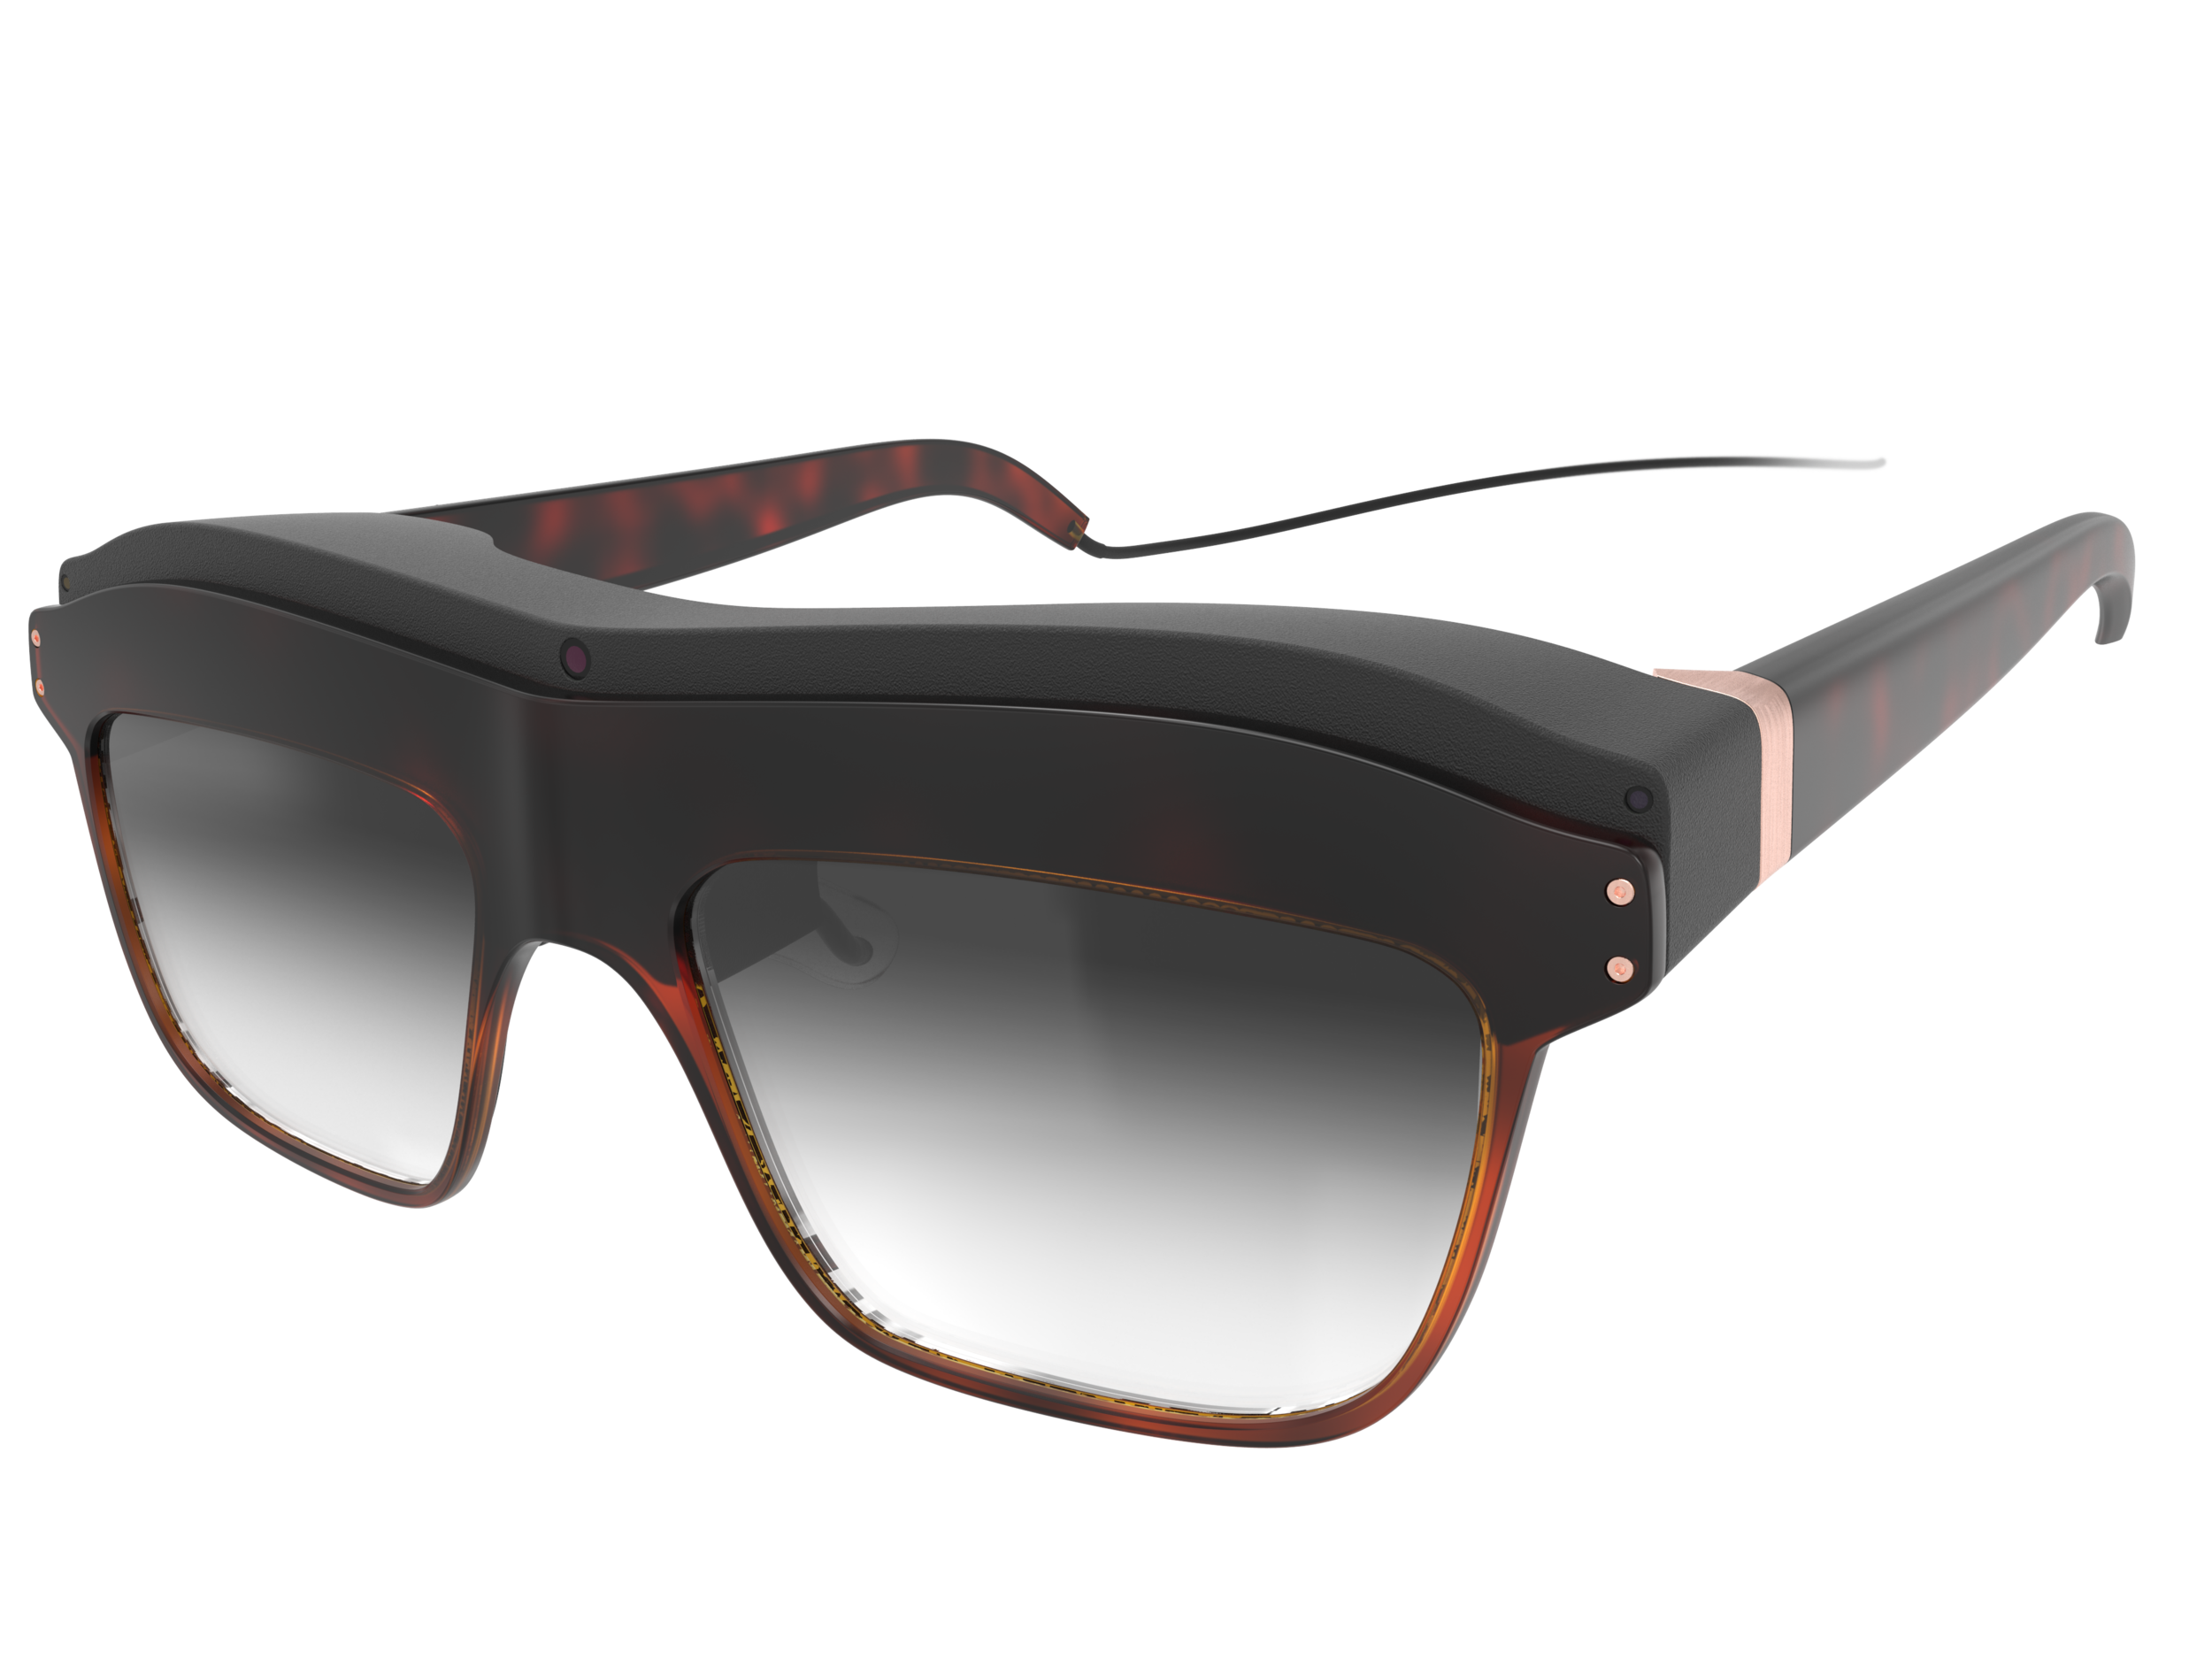 Front perspective view of the woman's concept design WaveOptics glasses